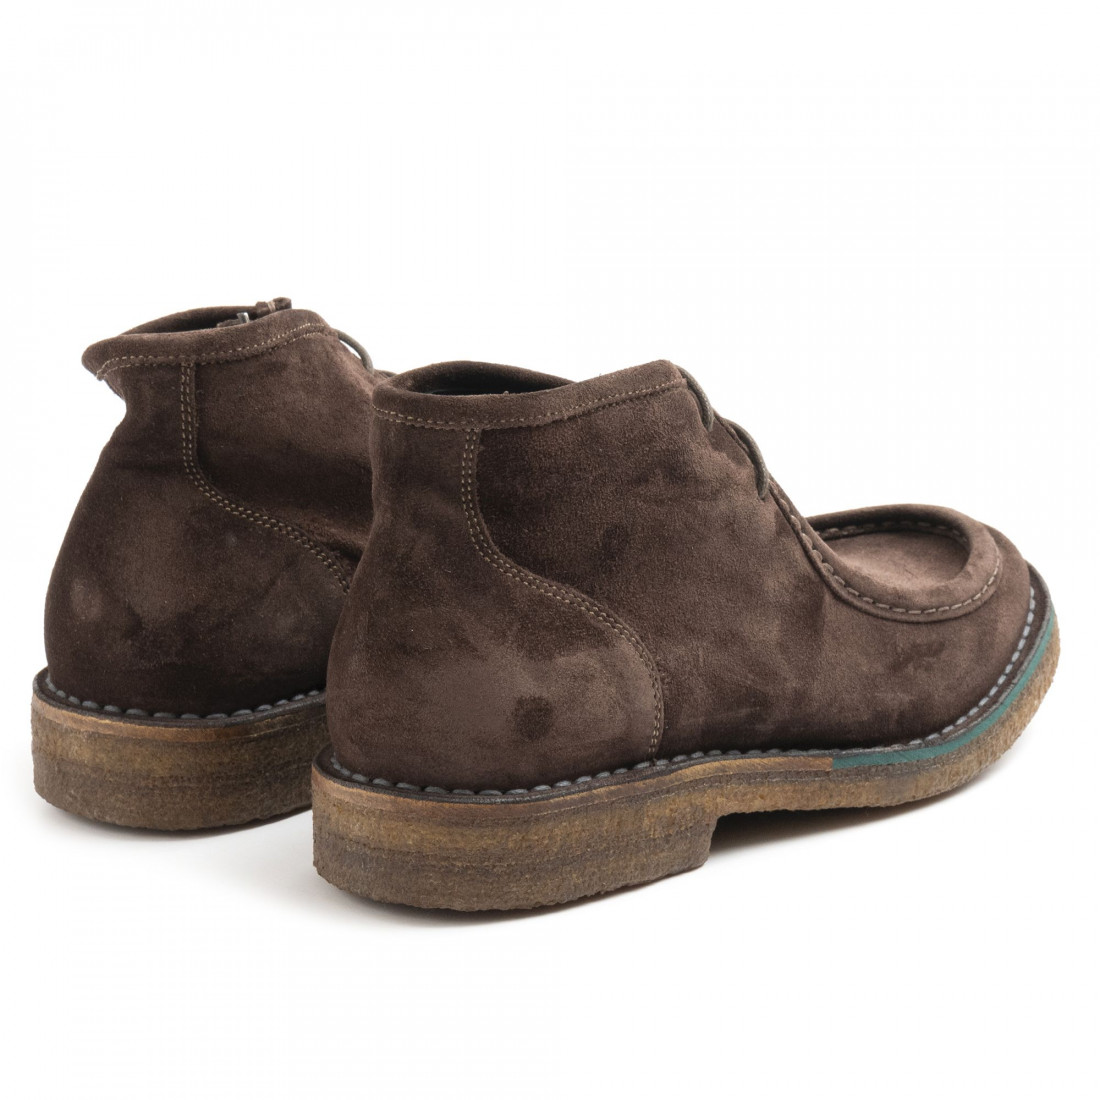 lace up ankle boots man uitormeda 3904moro 6227